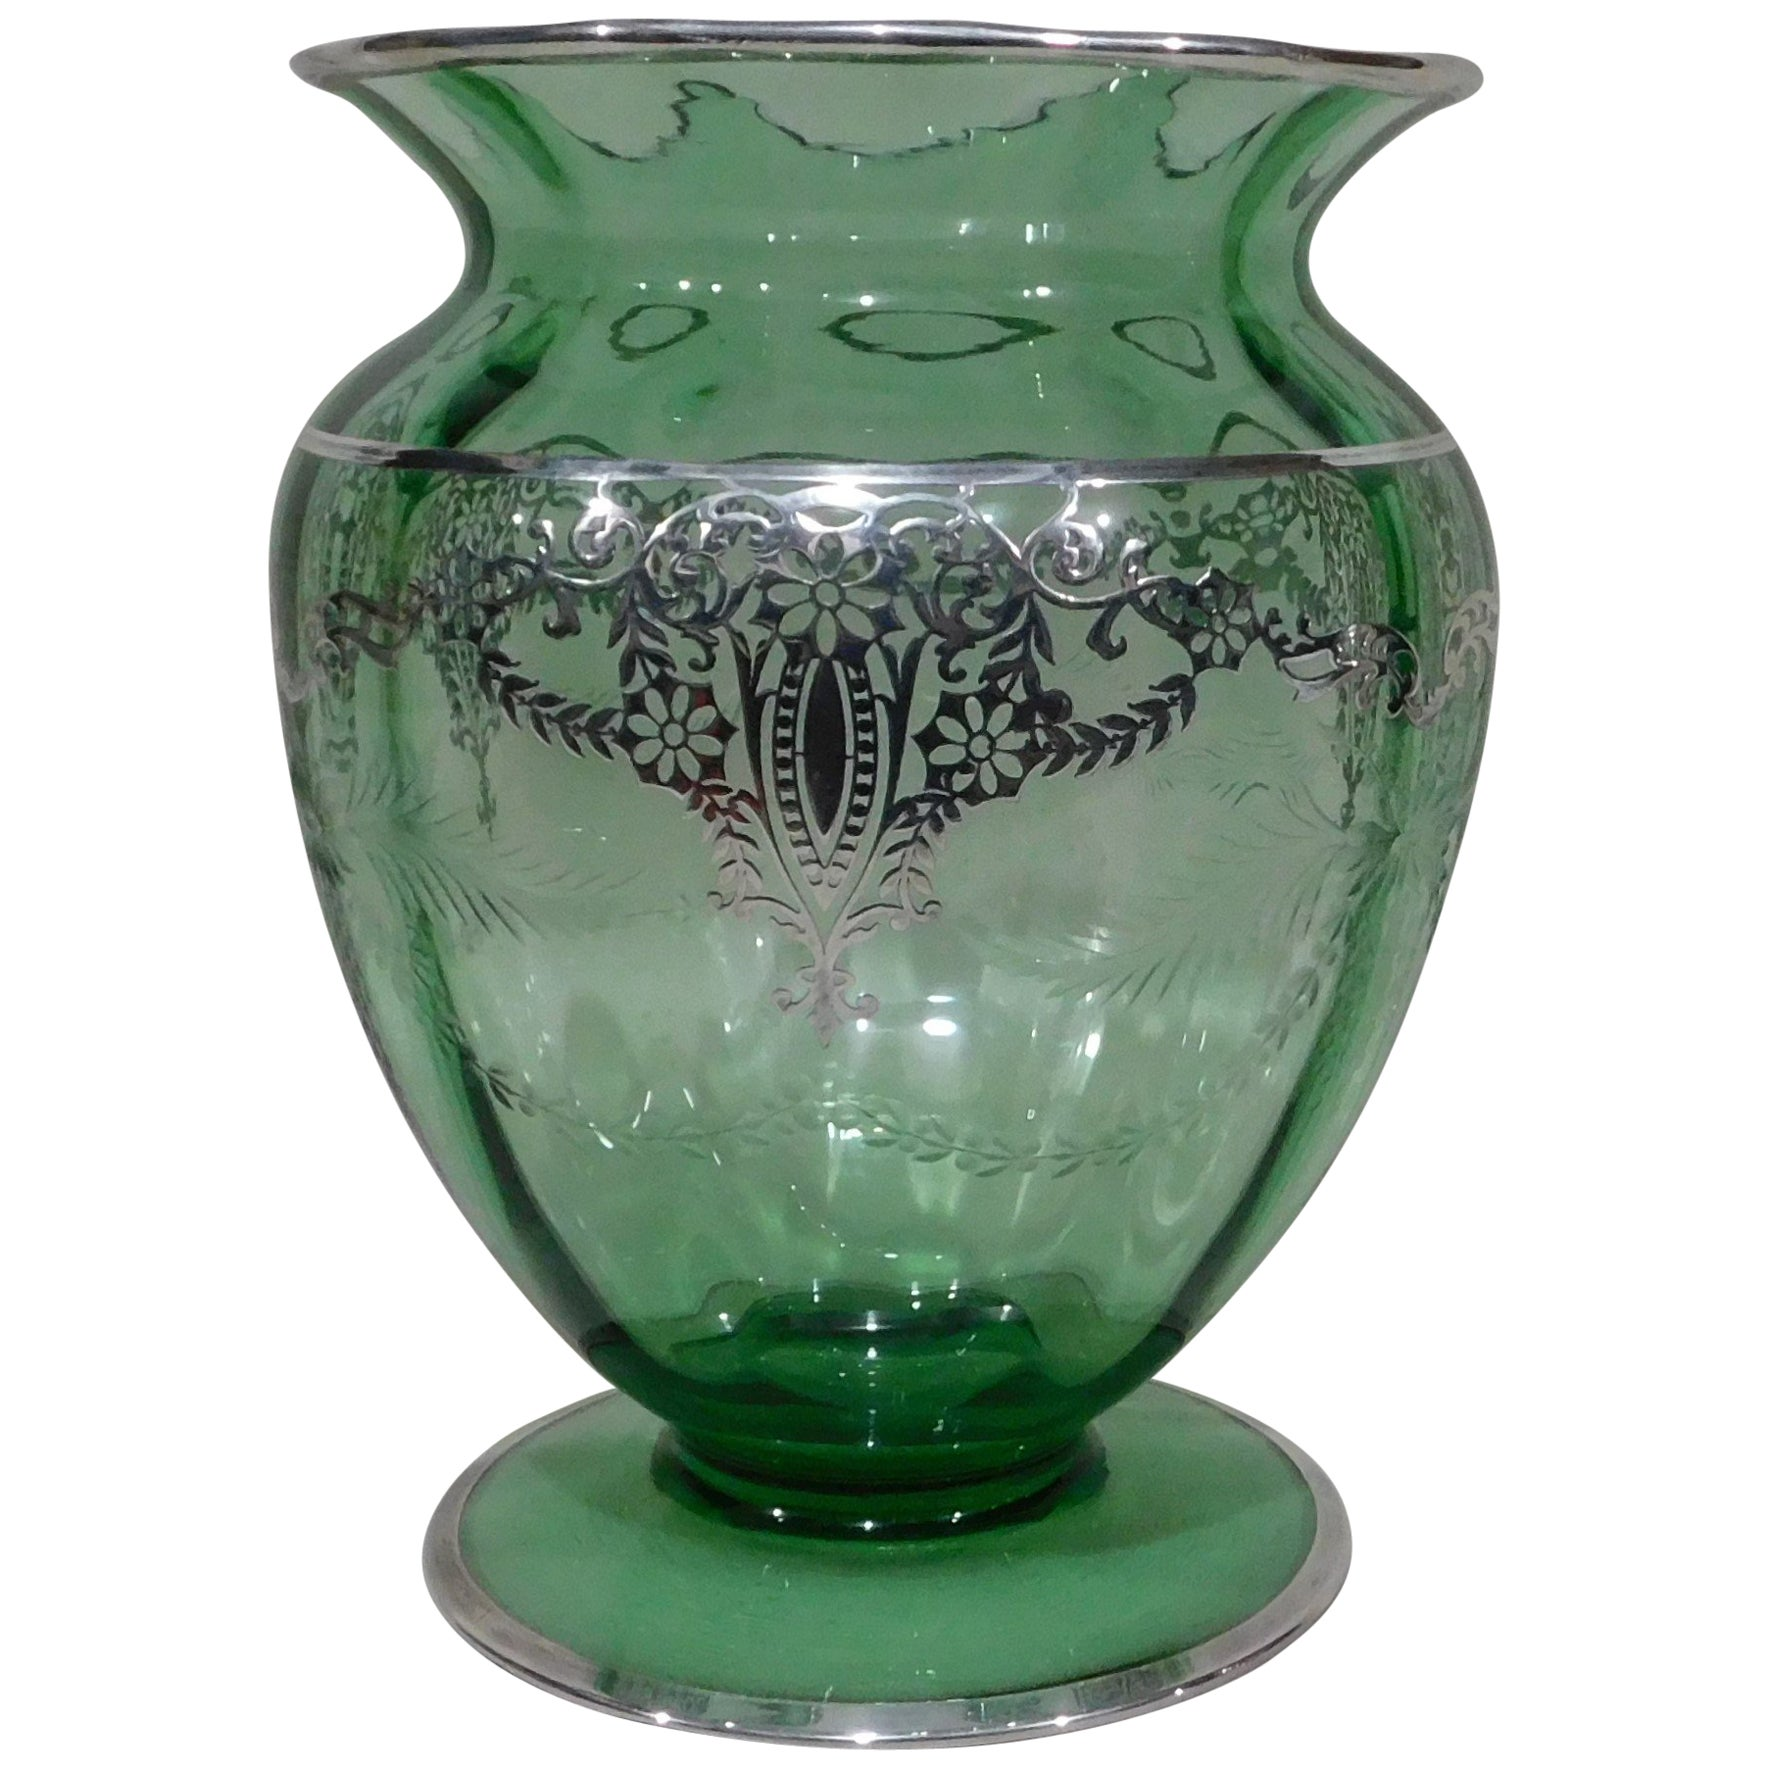 American Wheeled Cut Green Glass Vase with Silver Overlay, circa 1920s